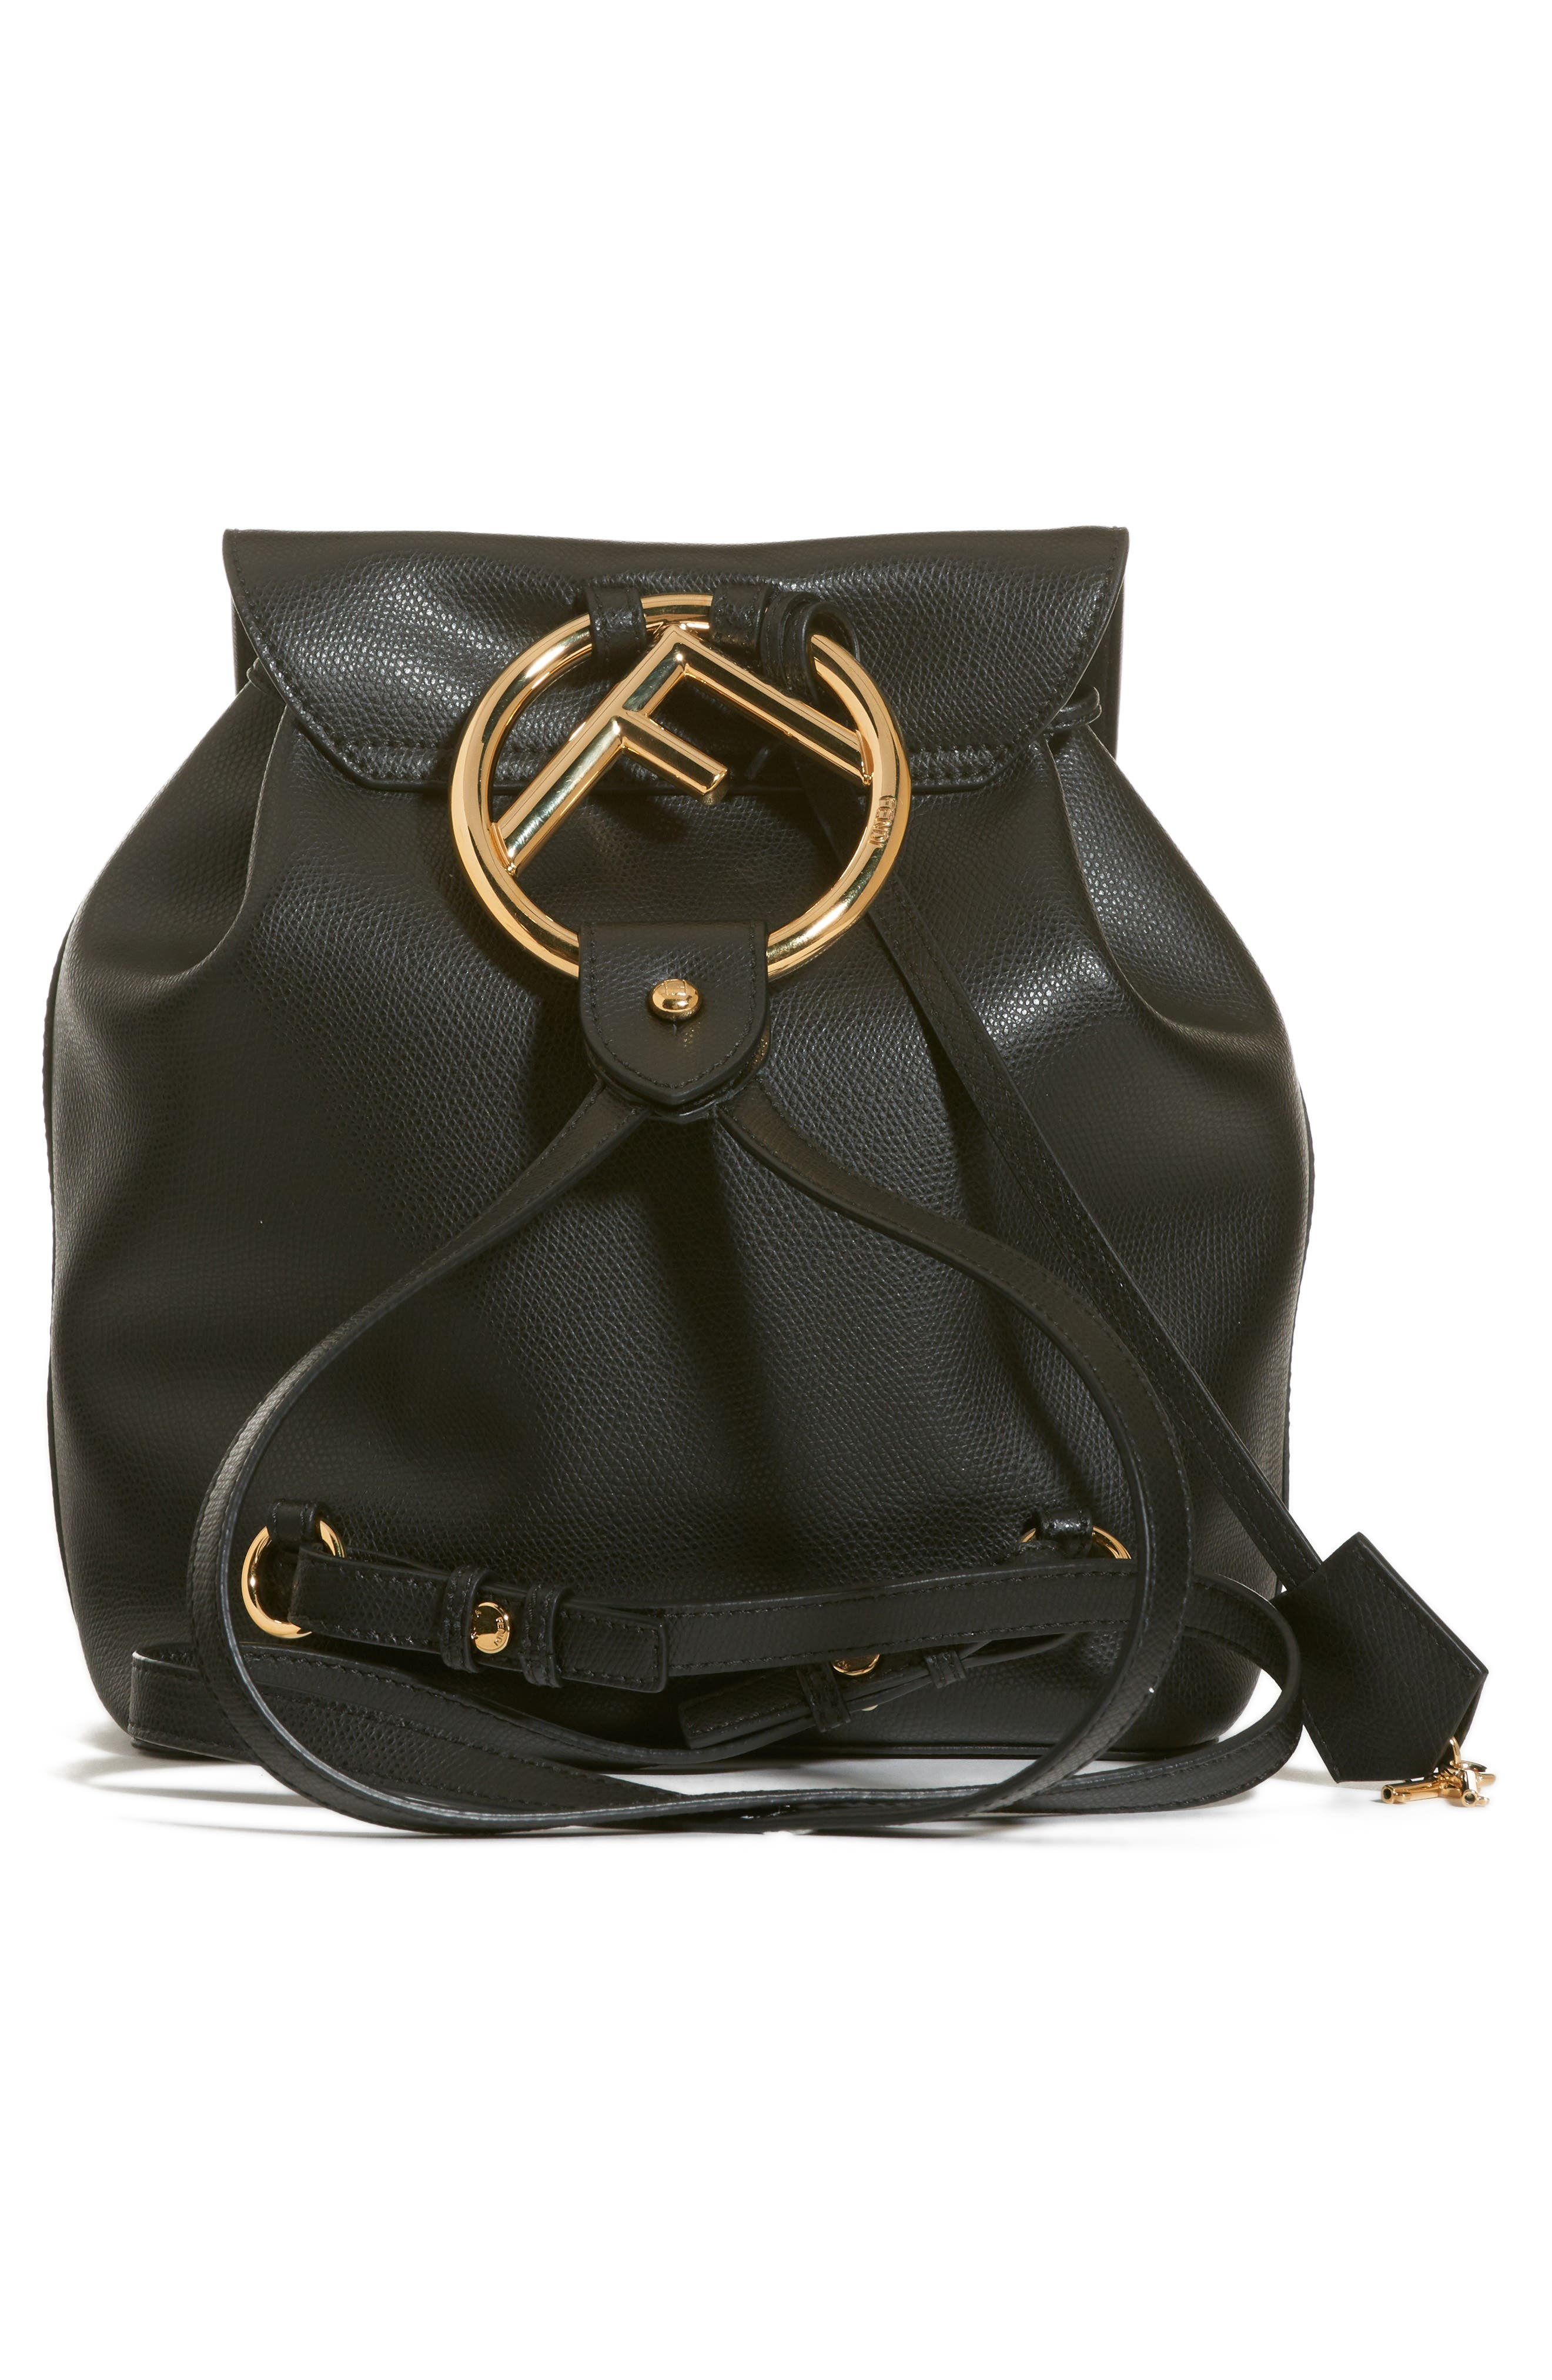 Cruise Calfskin Leather Backpack,                             Alternate thumbnail 2, color,                             006